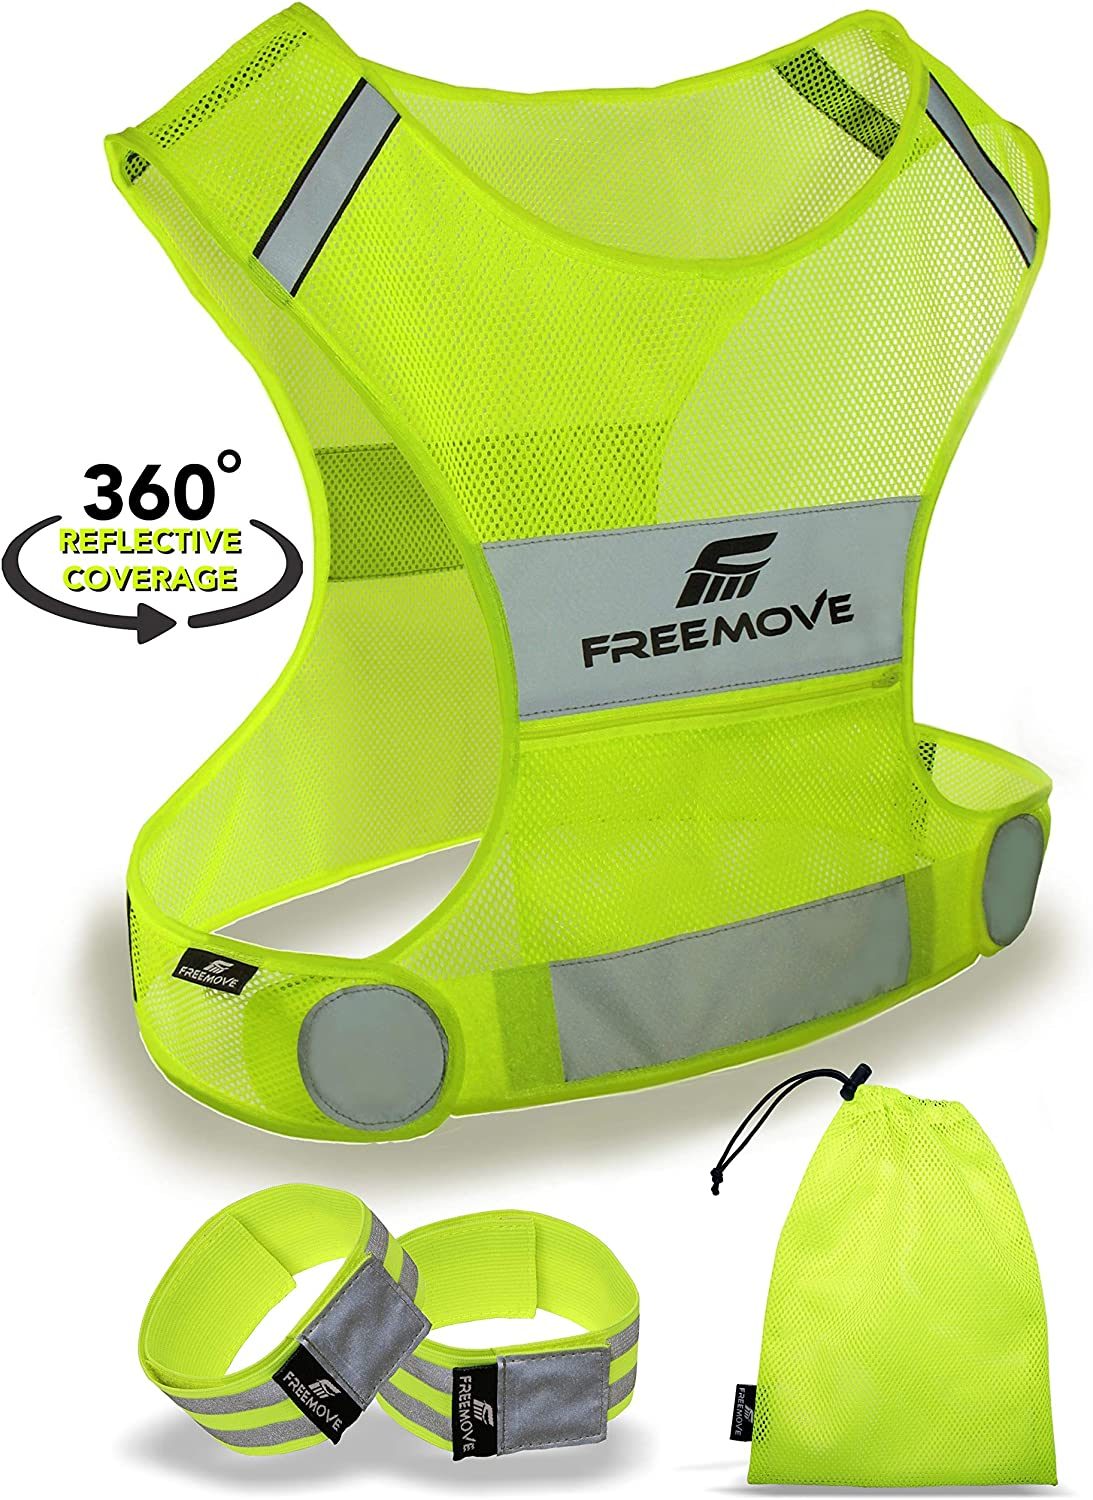 No.1 Reflective Vest Running Gear | YOUR BEST CHOICE TO STAY VISIBLE | Ultralight & Comfy Motorcycle Reflective Vest | Large Pocket & Adjustable Waist | Safety Vest in 6 Sizes + Hi Vis Bands & Bag : Sports & Outdoors